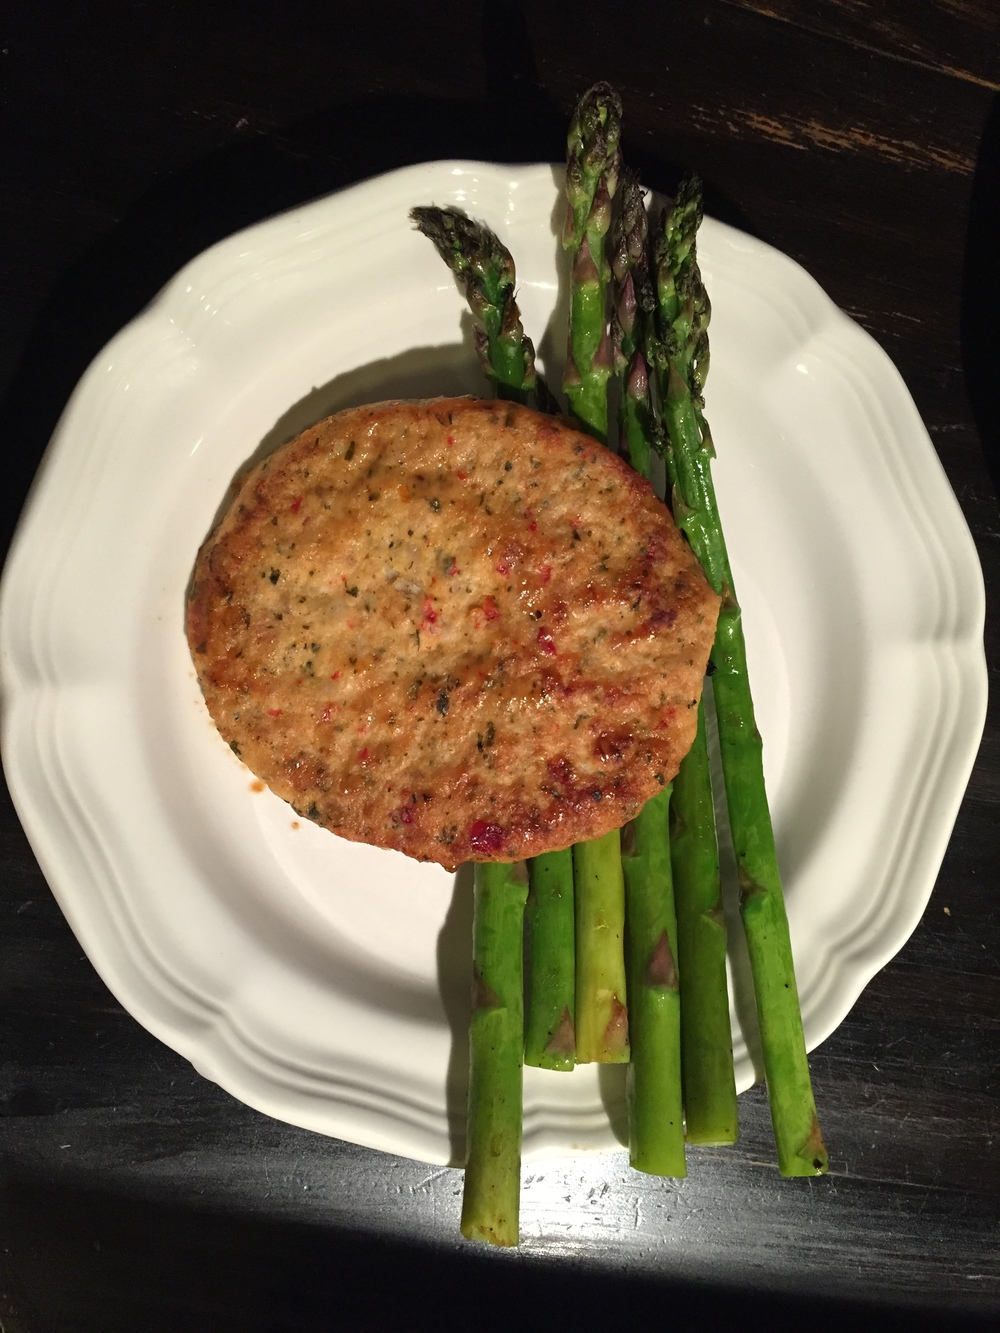 Chicken Burger with Asparagus